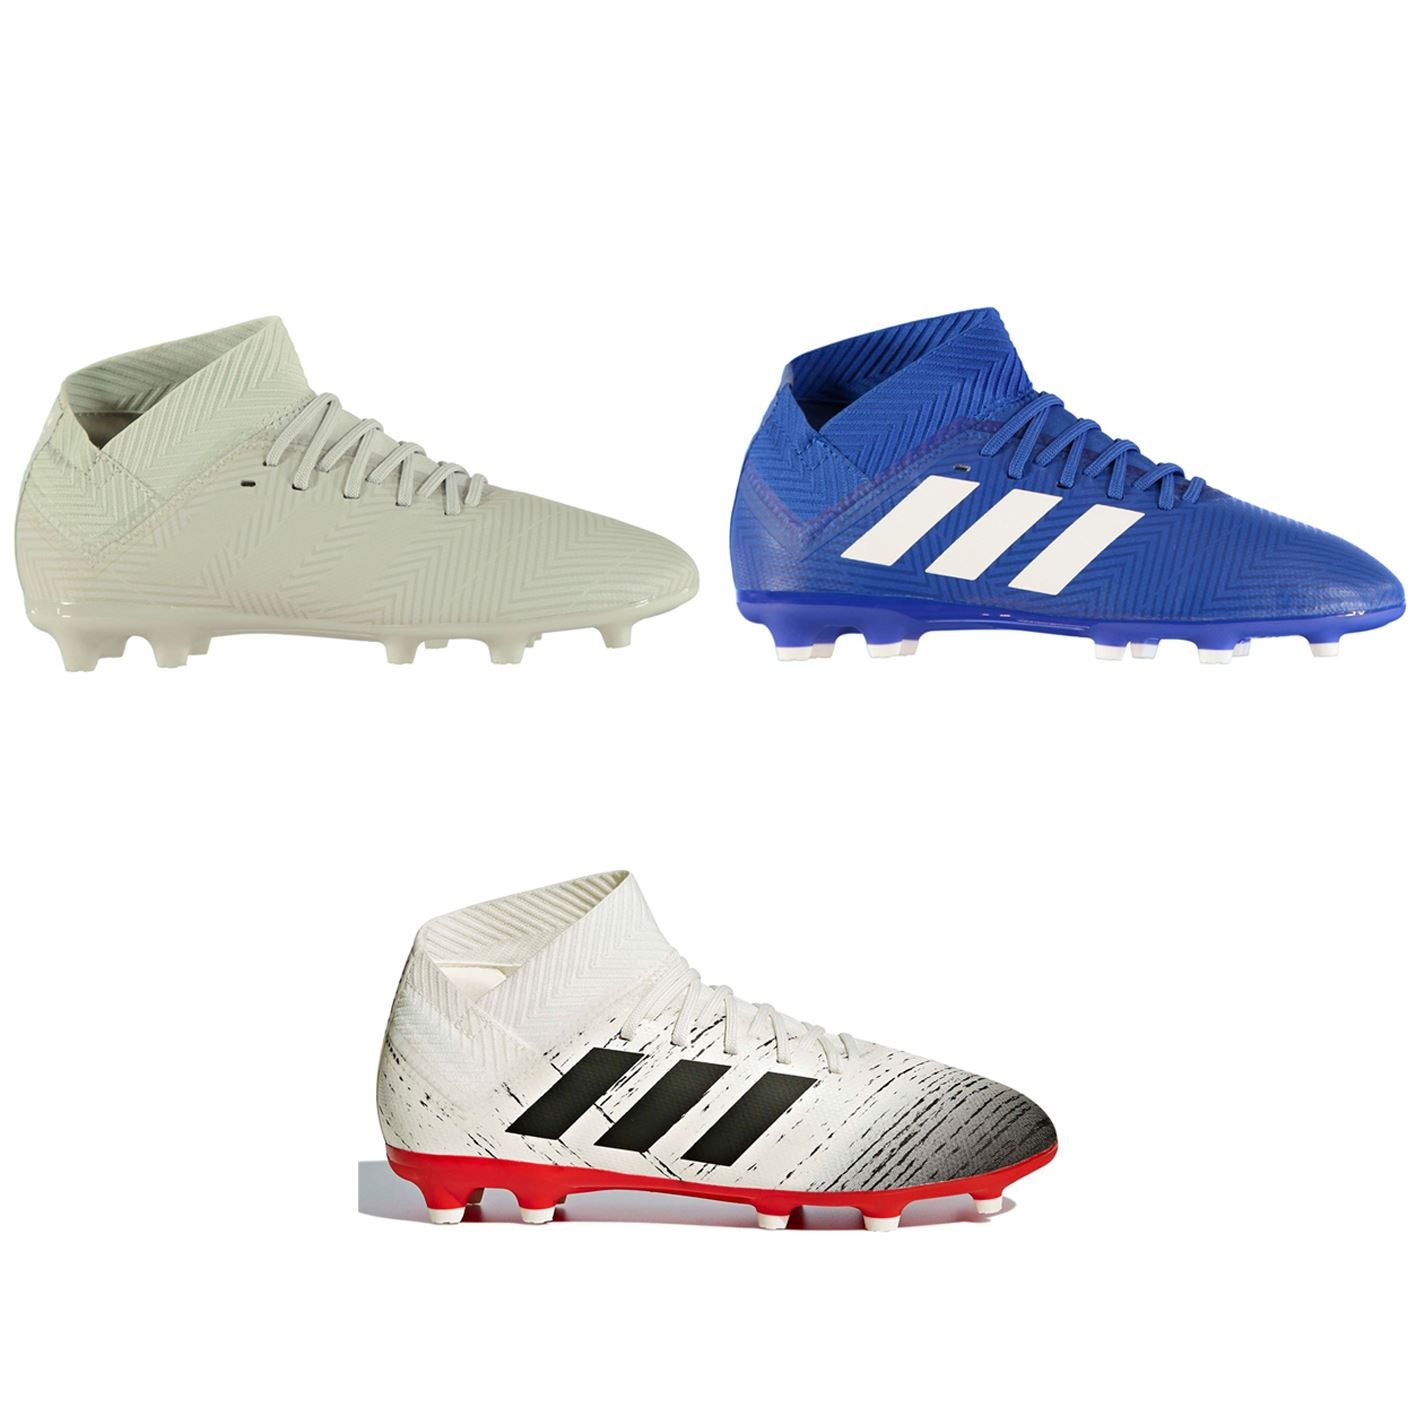 53e23c78 adidas Nemeziz 18.3 FG Firm Ground Football Boots Childs Soccer Shoes Cleats